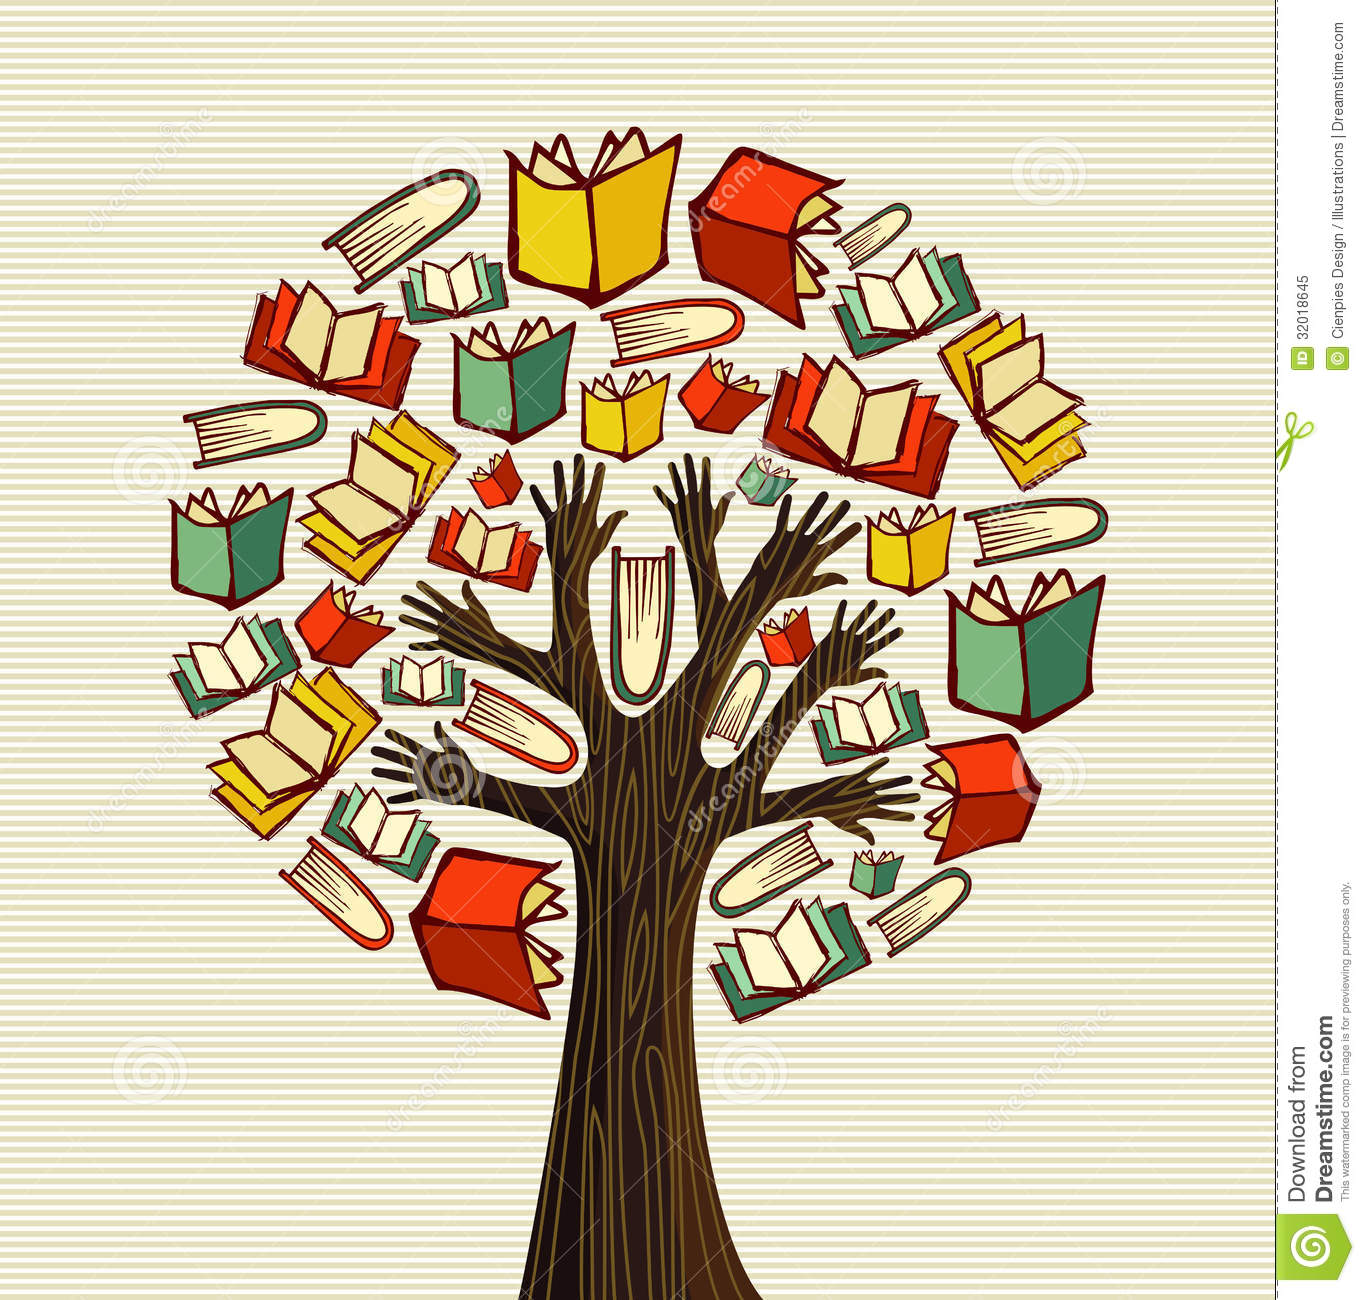 Fall Leaves Clip Art Wallpaper Concept Design Hand Books Tree Royalty Free Stock Photo